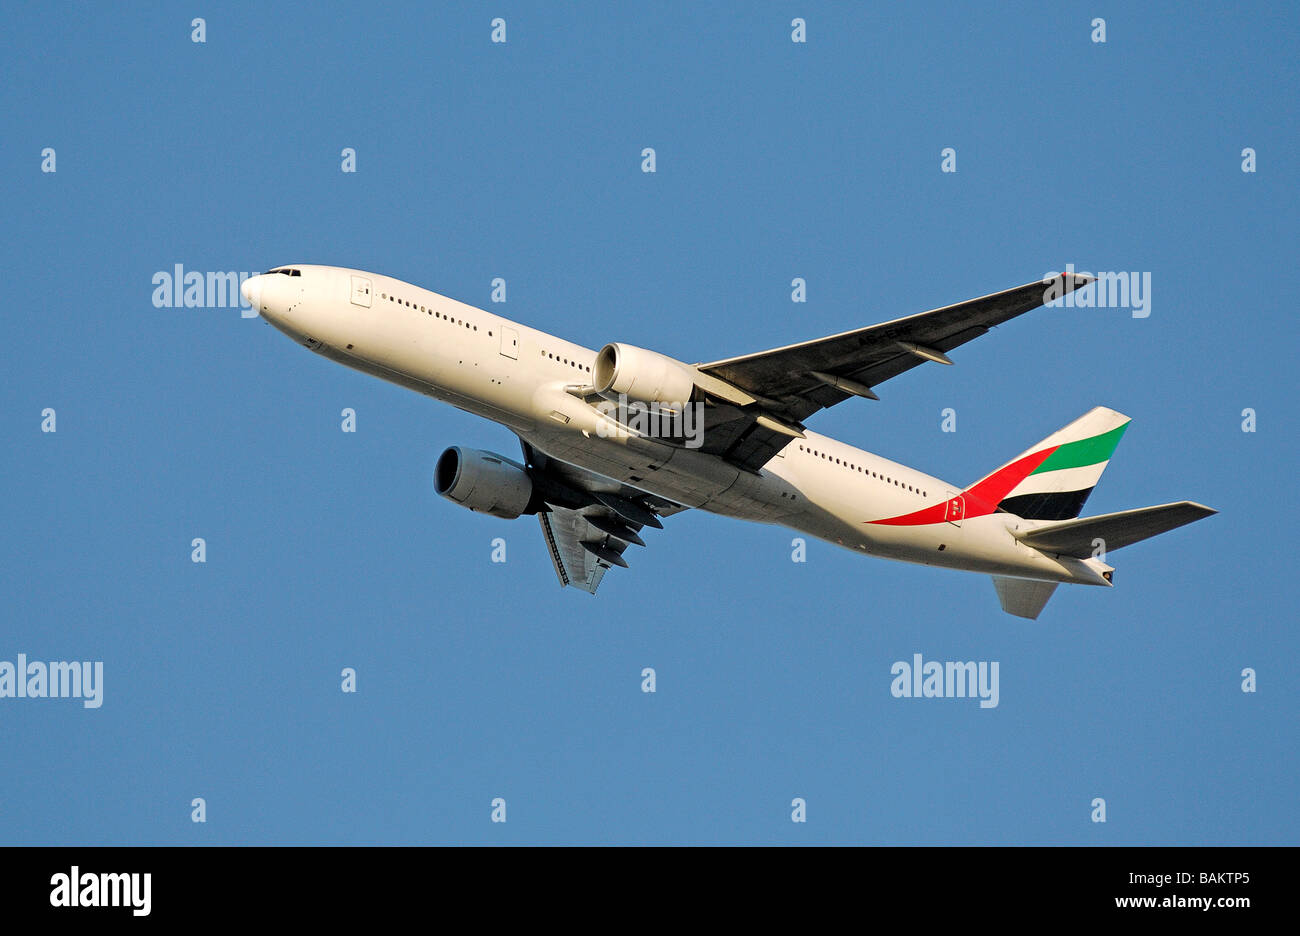 Emirates Airlines - Stock Image